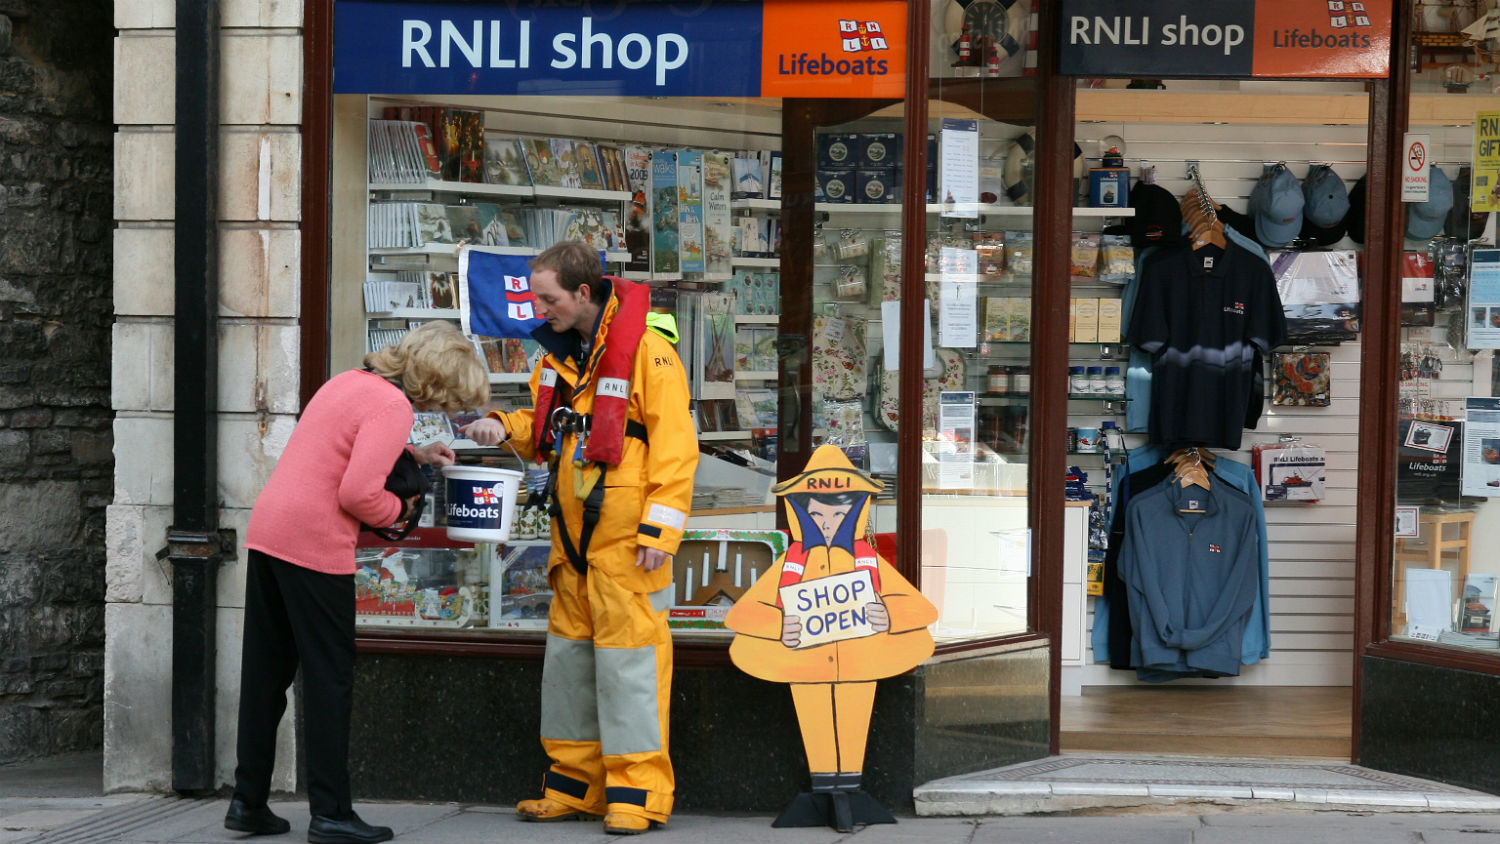 Buy RNLI gifts and souvenirs from our Swanage shop and help save lives at sea.